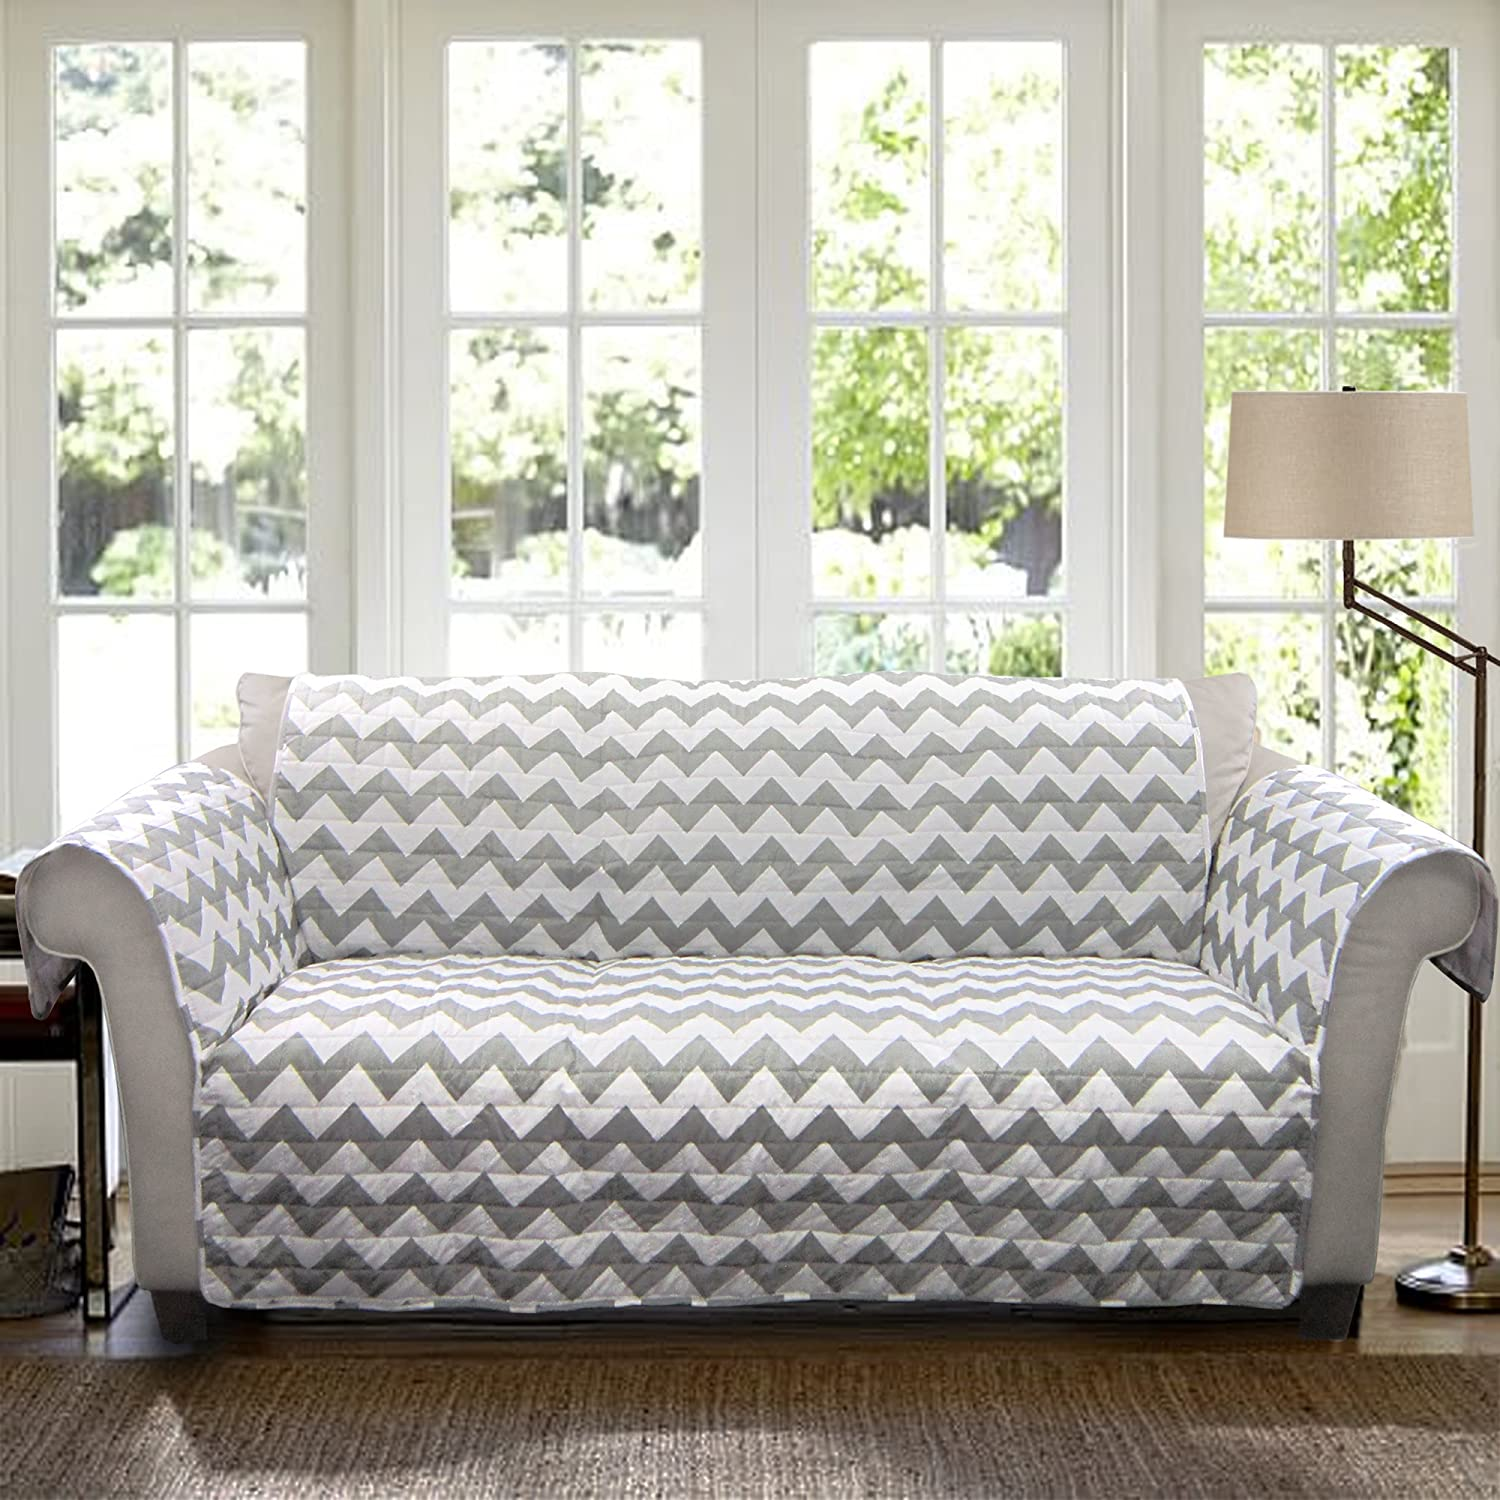 amazoncom lush decor chevron protector for sofa graywhite home u0026 kitchen